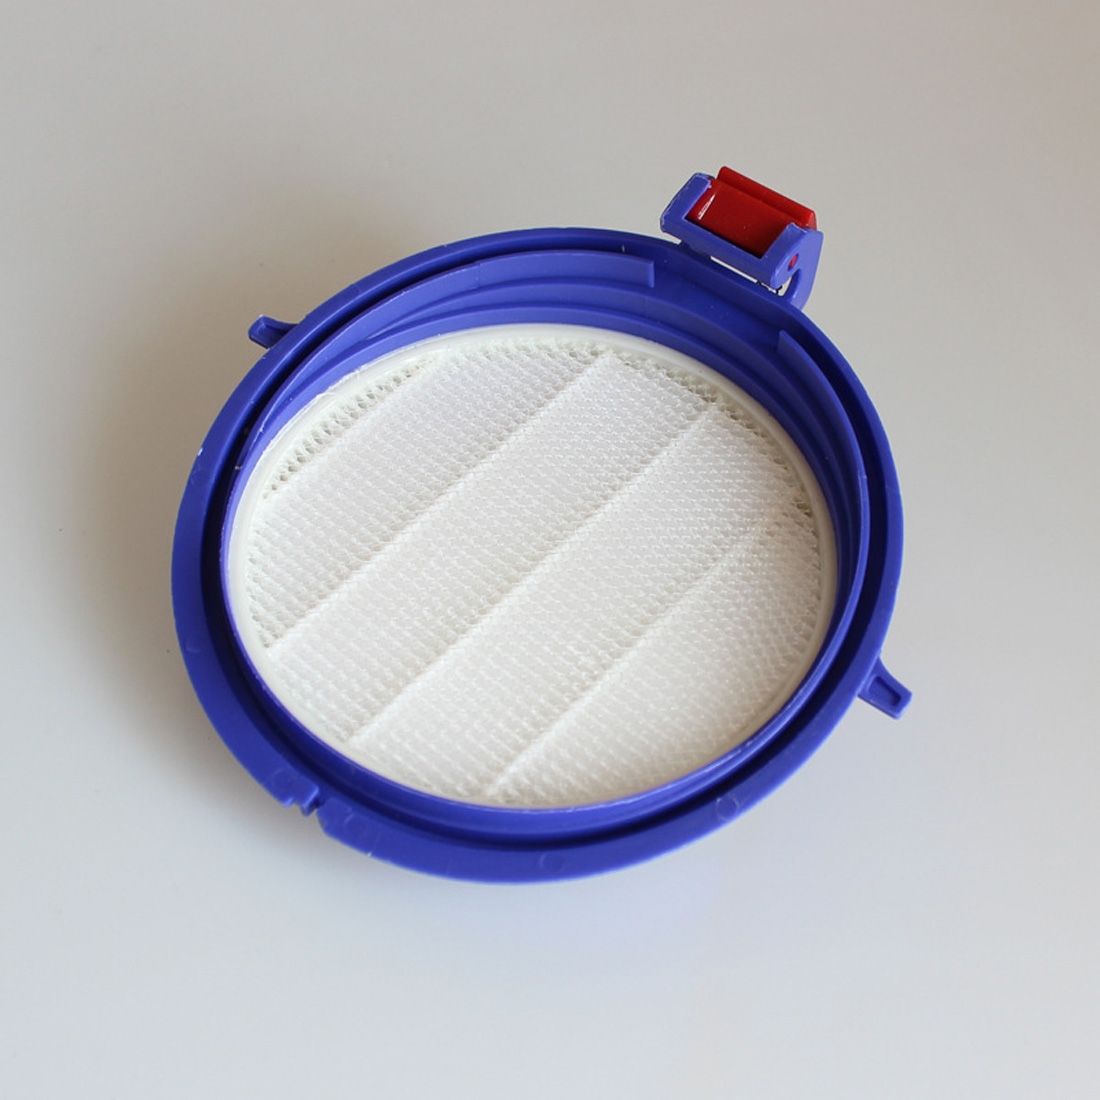 2 PCS HEPA Filters Vacuum Cleaner Pre-Filter for Dyson DC25 Vacuum Cleaner